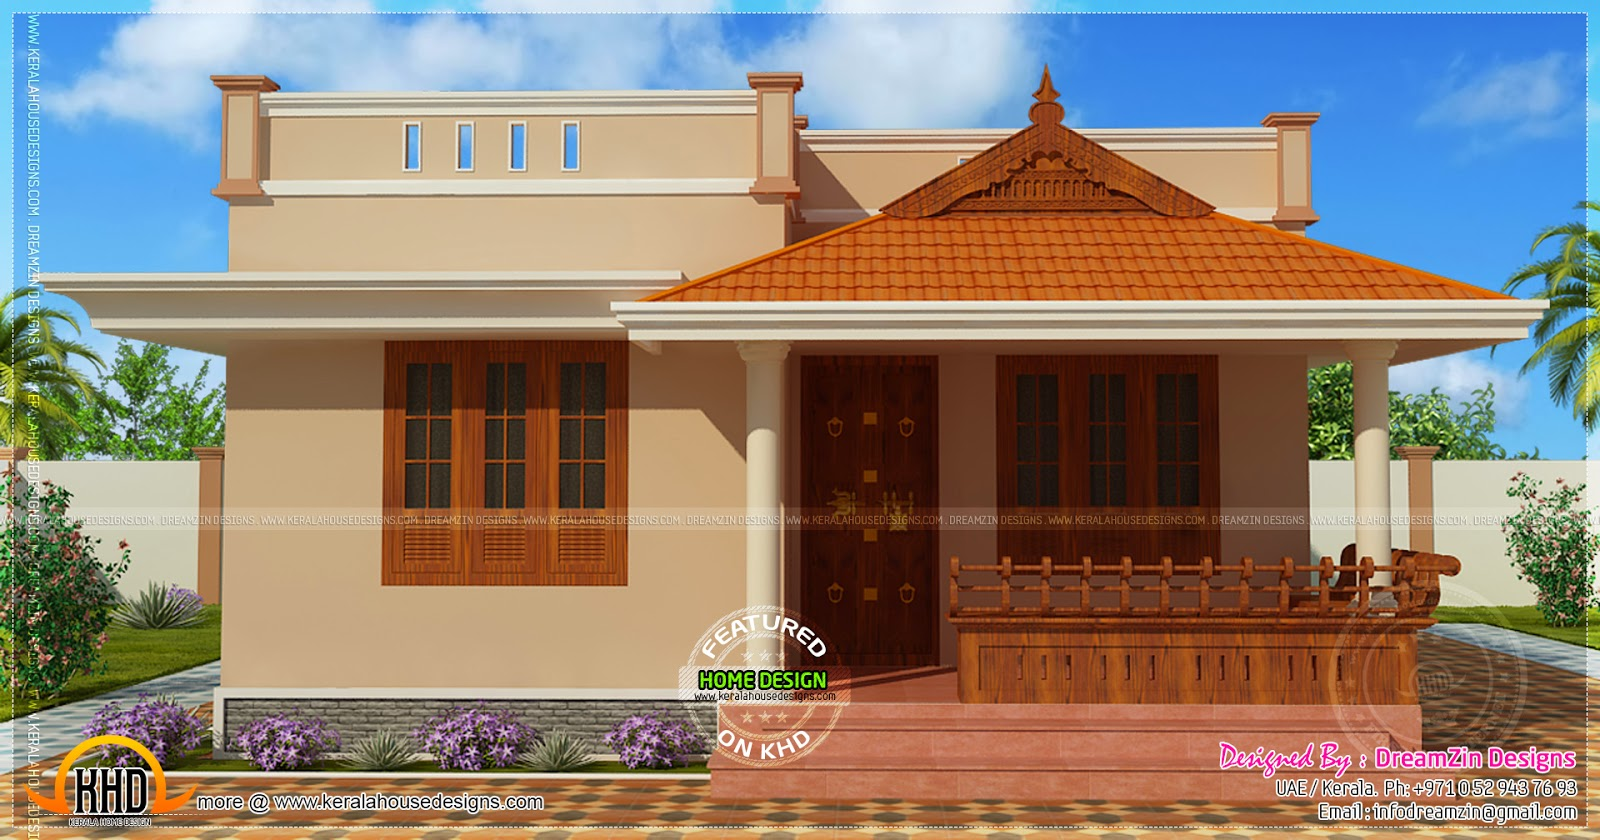 35 small and simple but beautiful house with roof deck New home designs in india